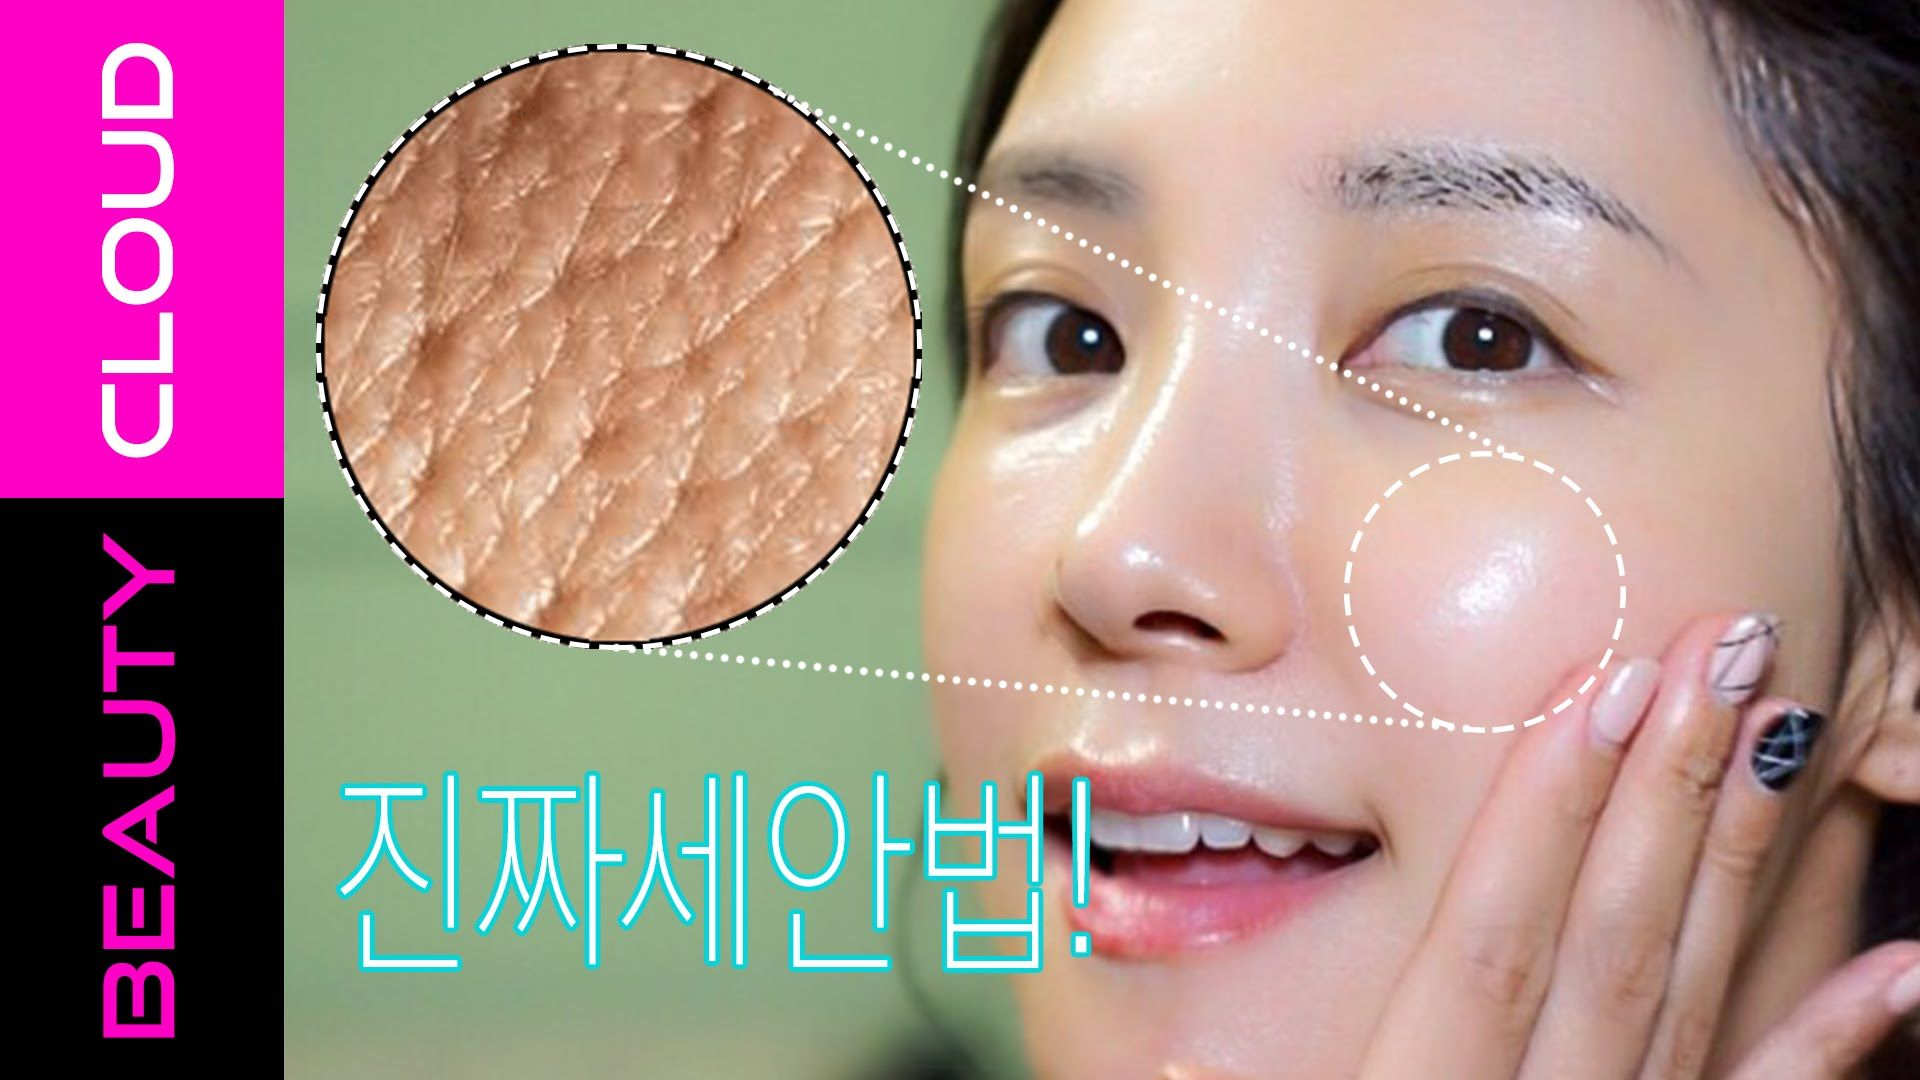 All about Cleansing for real healthy skin by U:NA Beautycloud